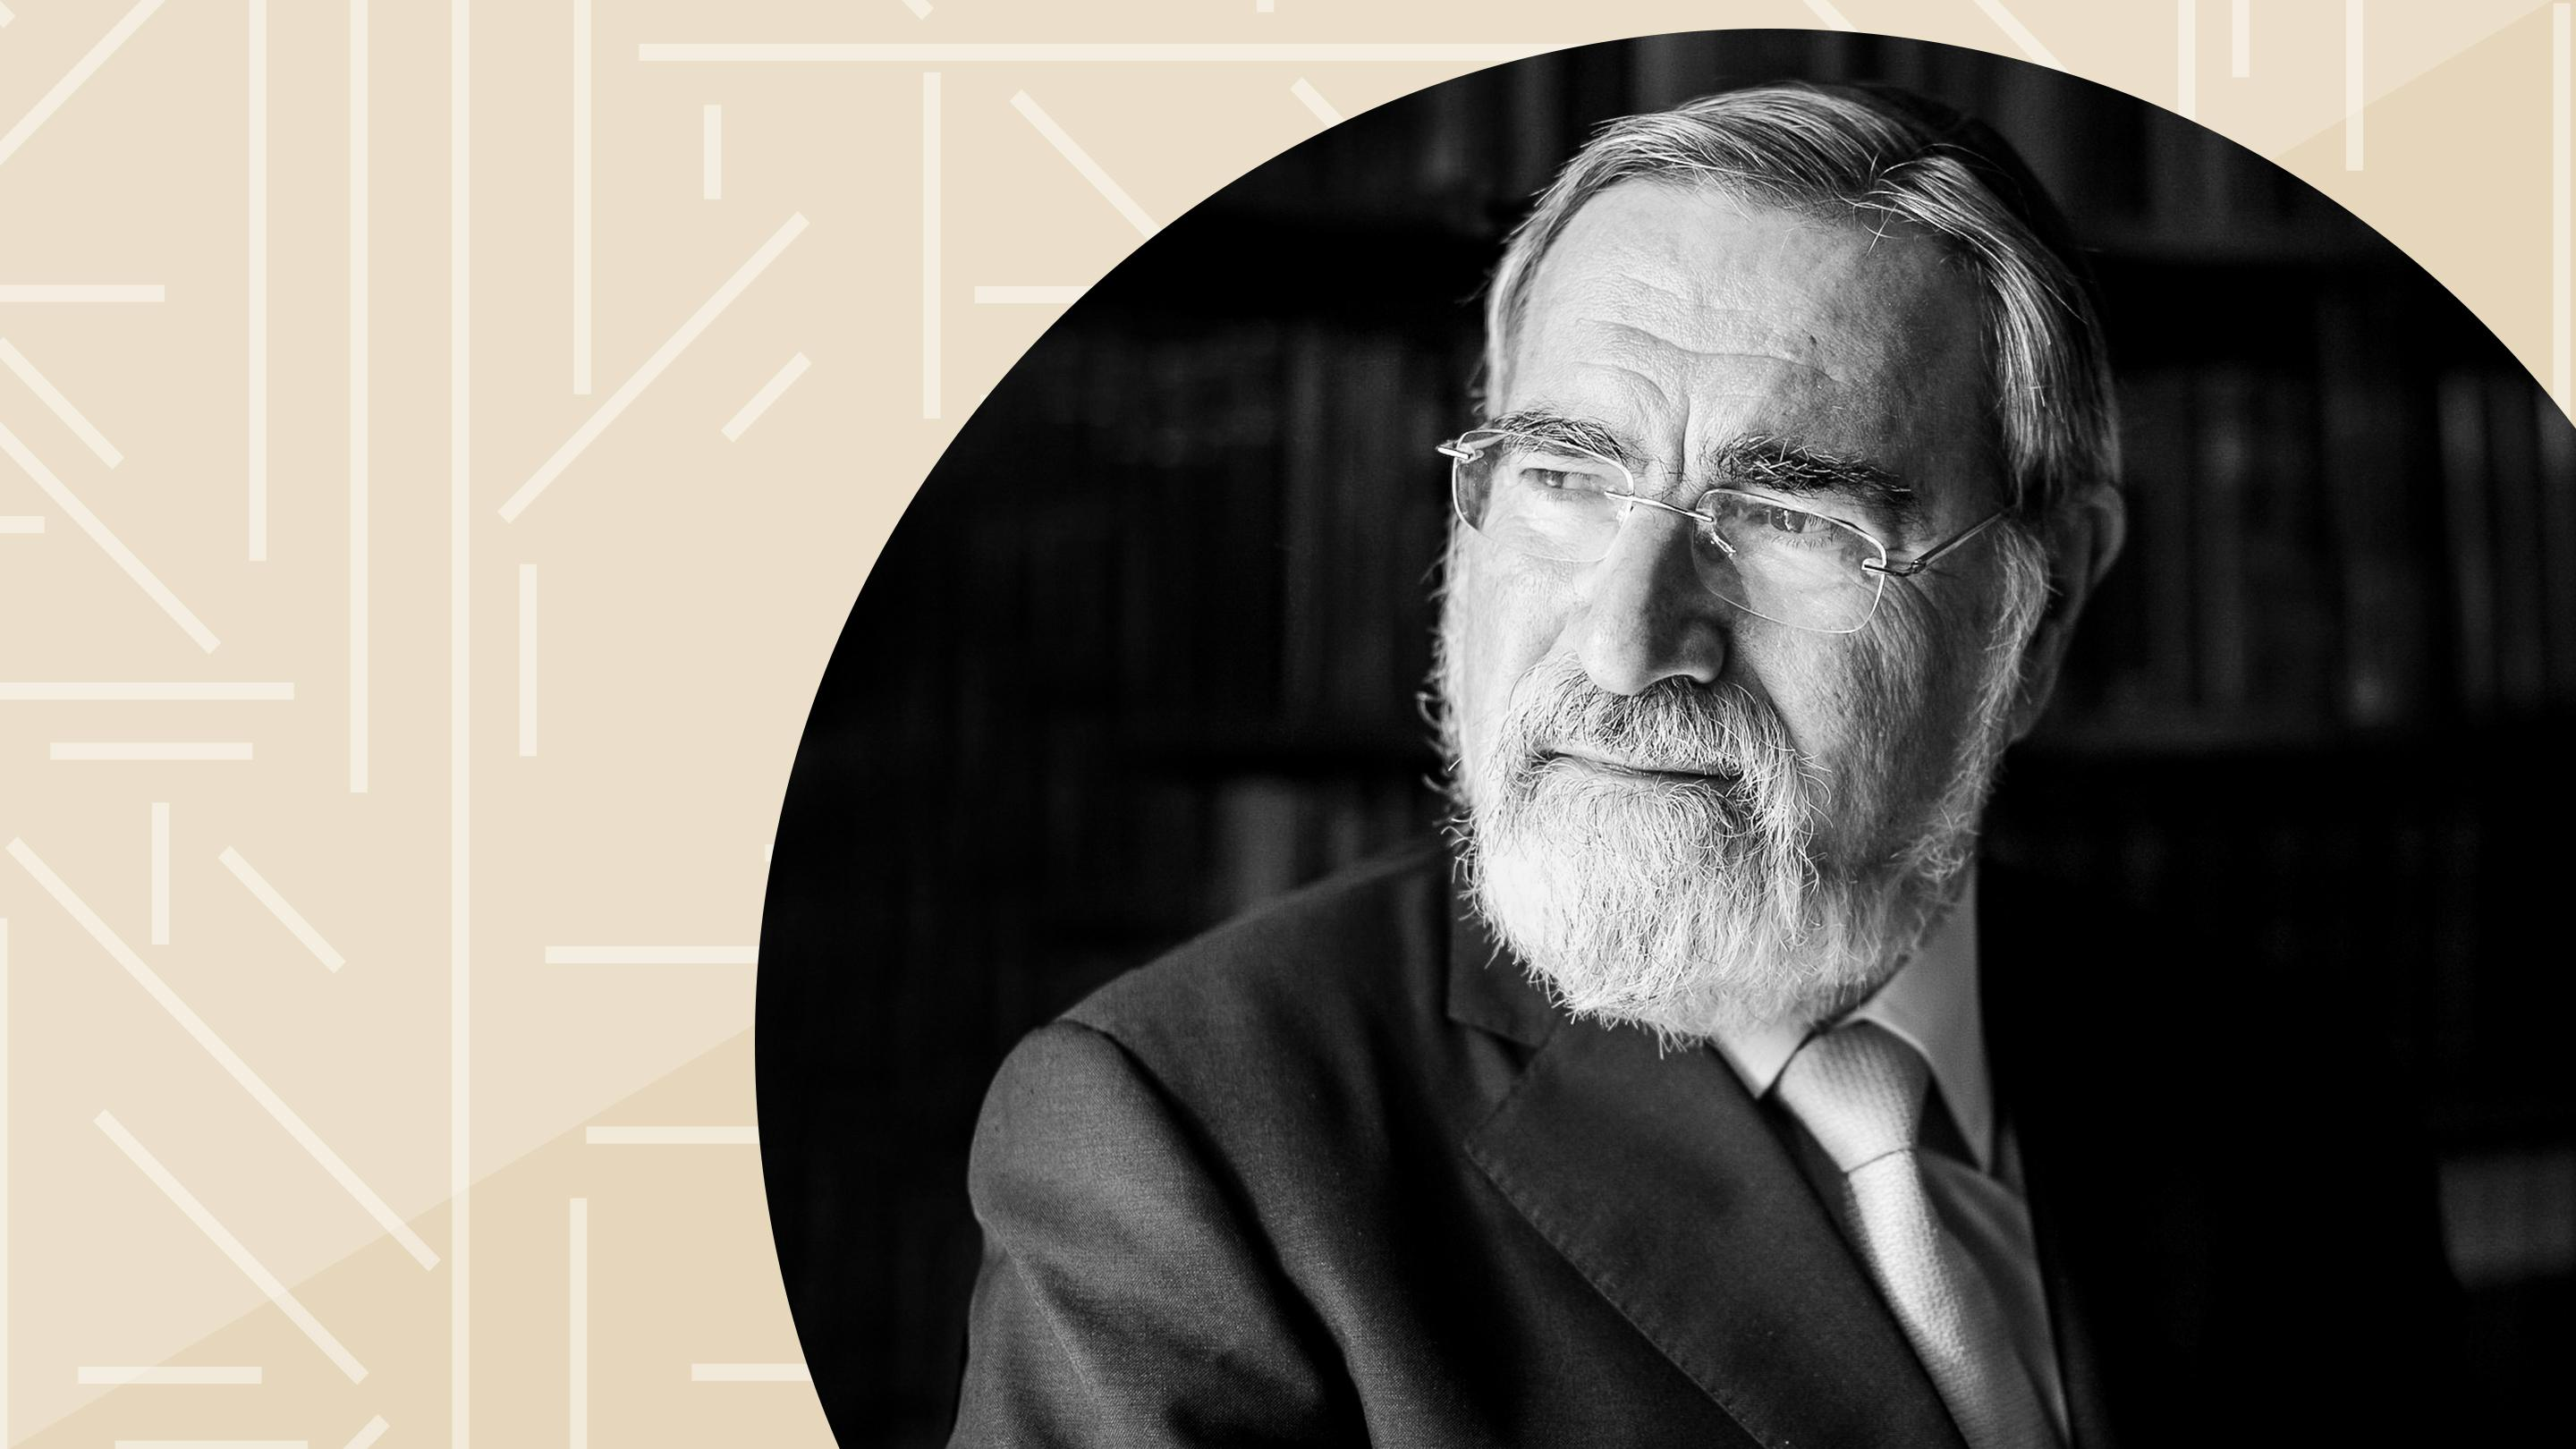 How we can navigate the coronavirus pandemic with courage and hope | Rabbi Lord Jonathan Sacks